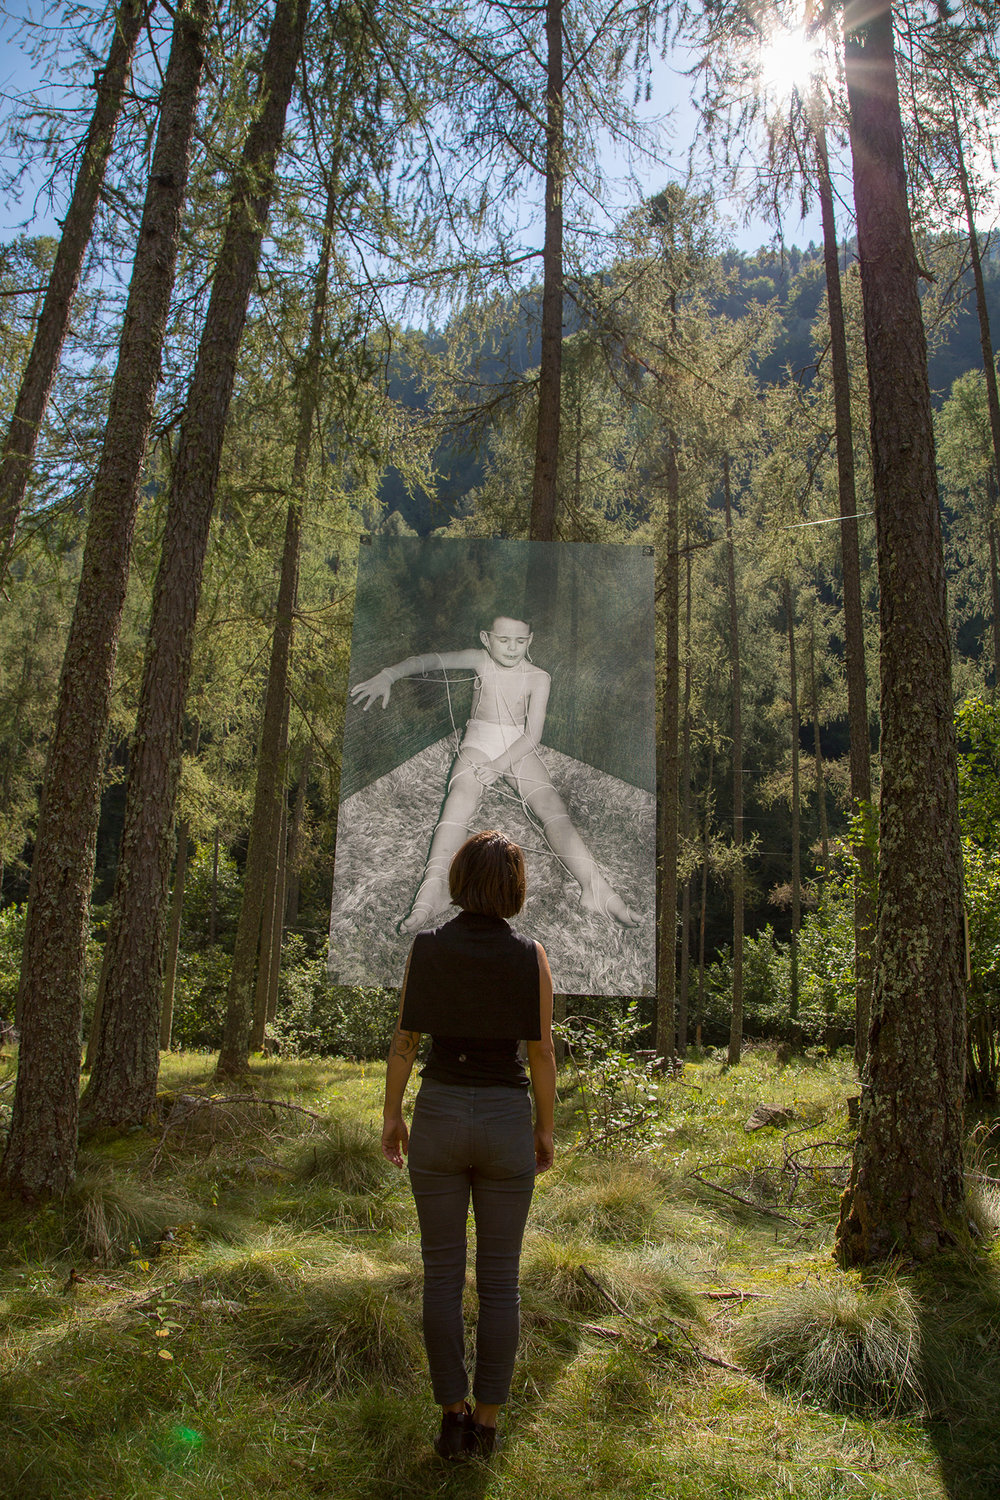 Jagoda Wiesnewska (Poland) with there artwork in the Redorta Valley   (photo Pietro Tafaro, Switzerland)